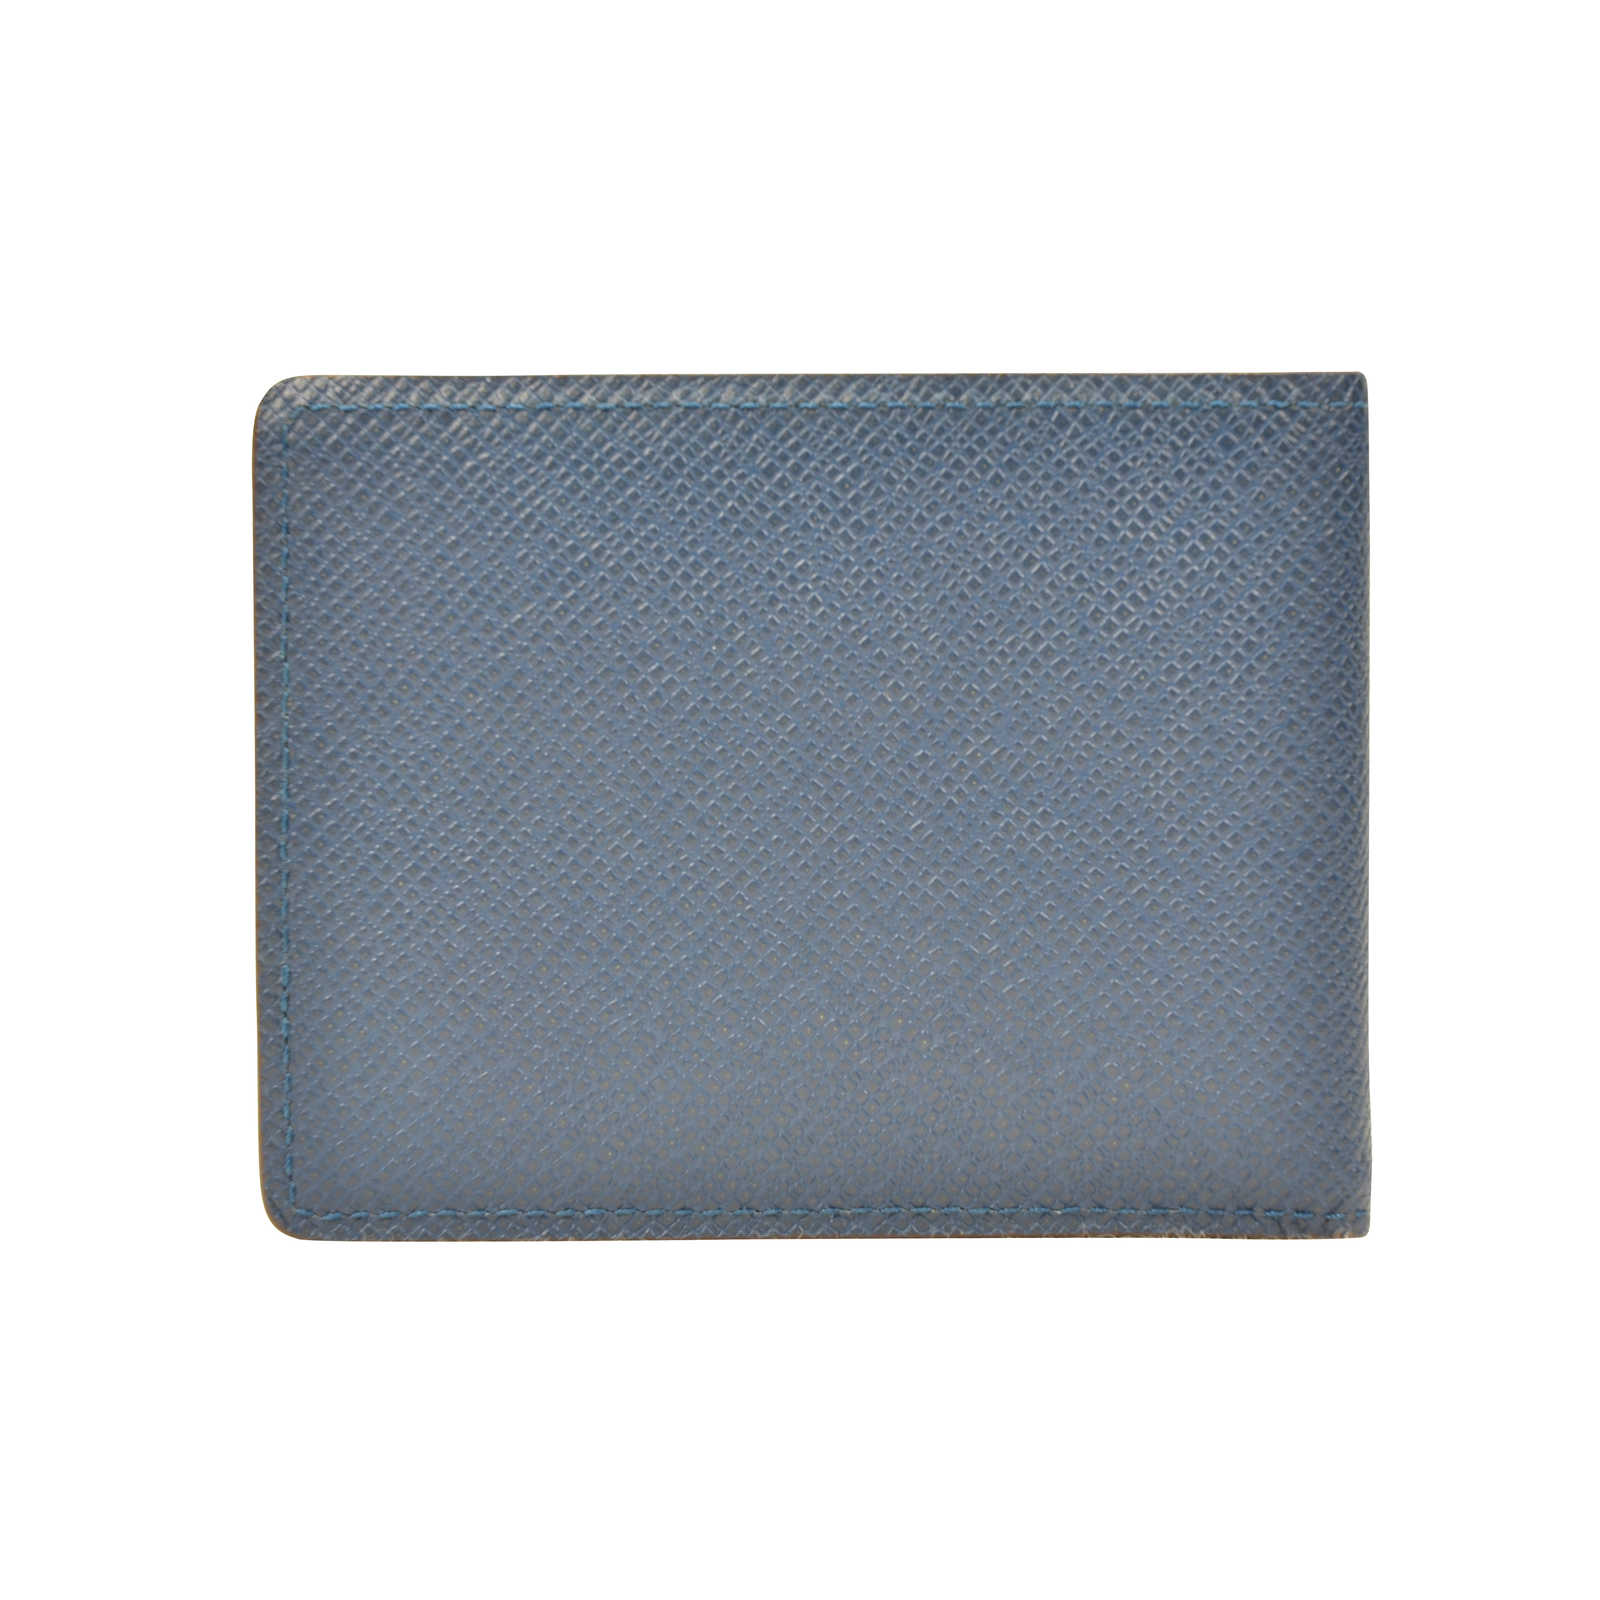 458ba6873890 ... Authentic Second Hand Louis Vuitton Taiga Slender Wallet  (PSS-320-00012) ...